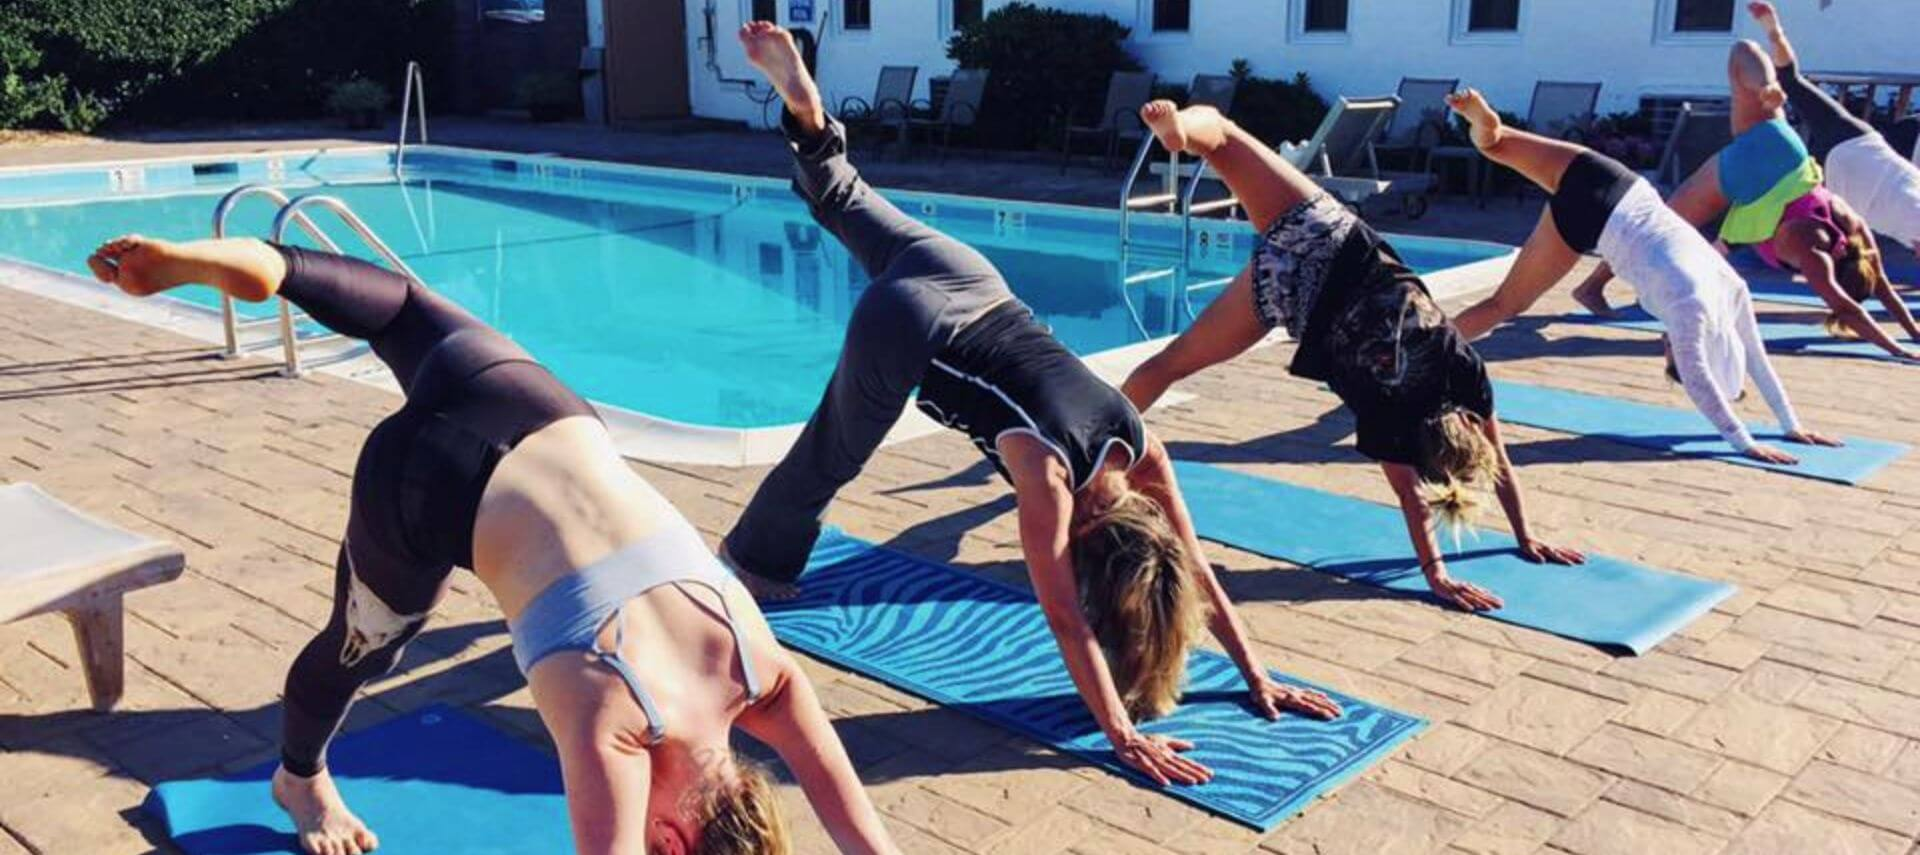 Four women doing three-legged dog yoga pose on blue mats at poolside